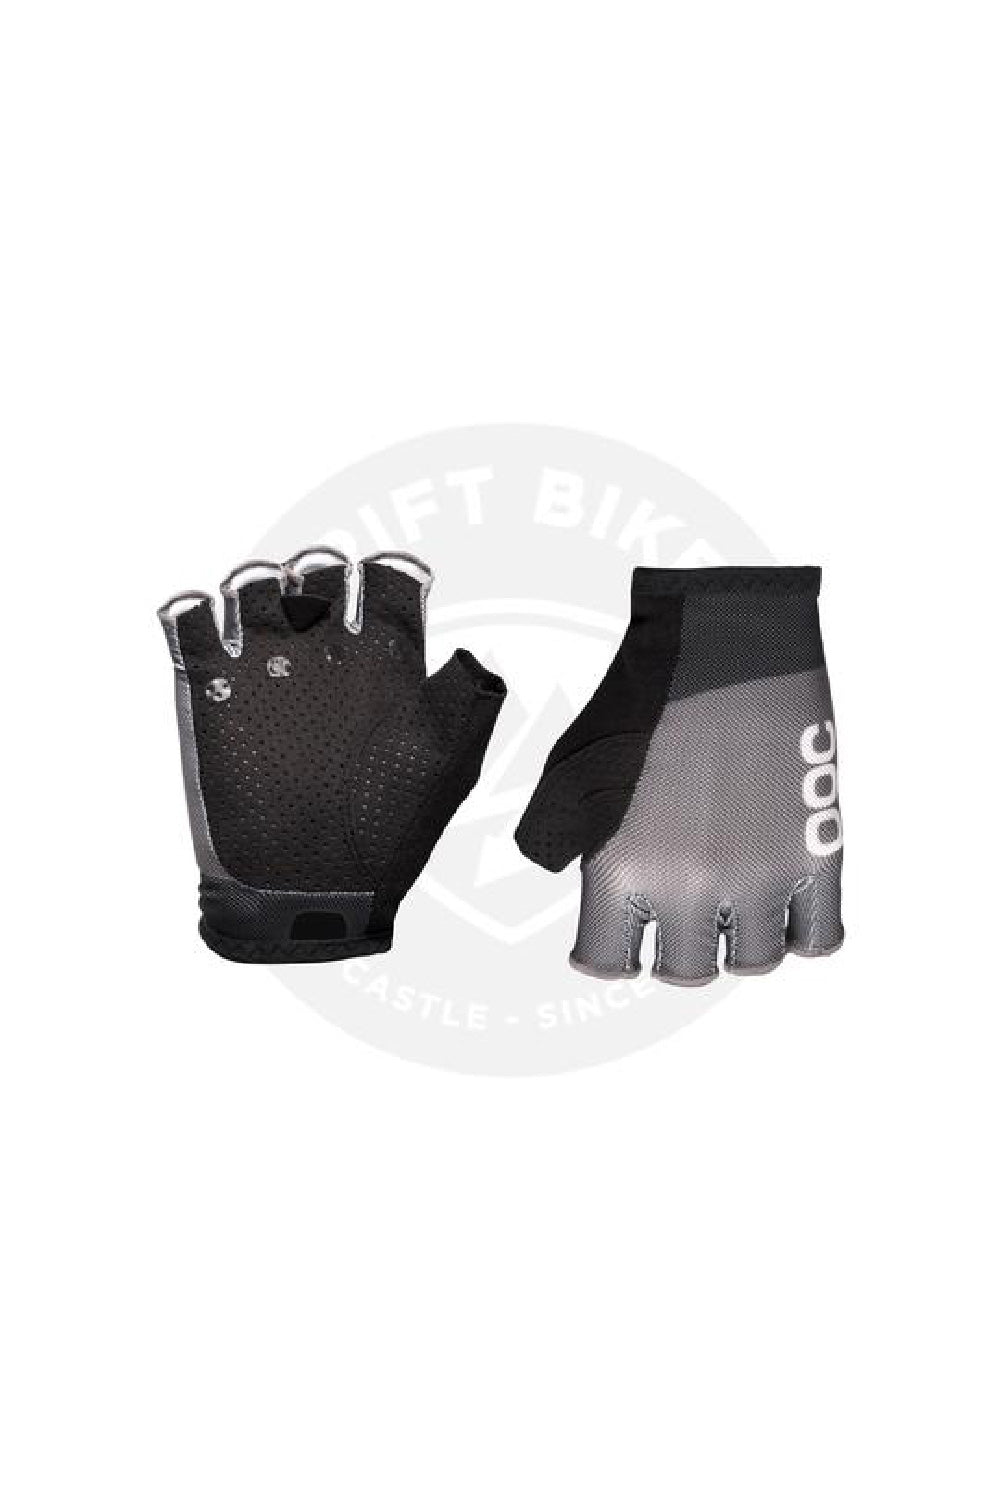 POC Essential Road Bike Mesh Short Glove